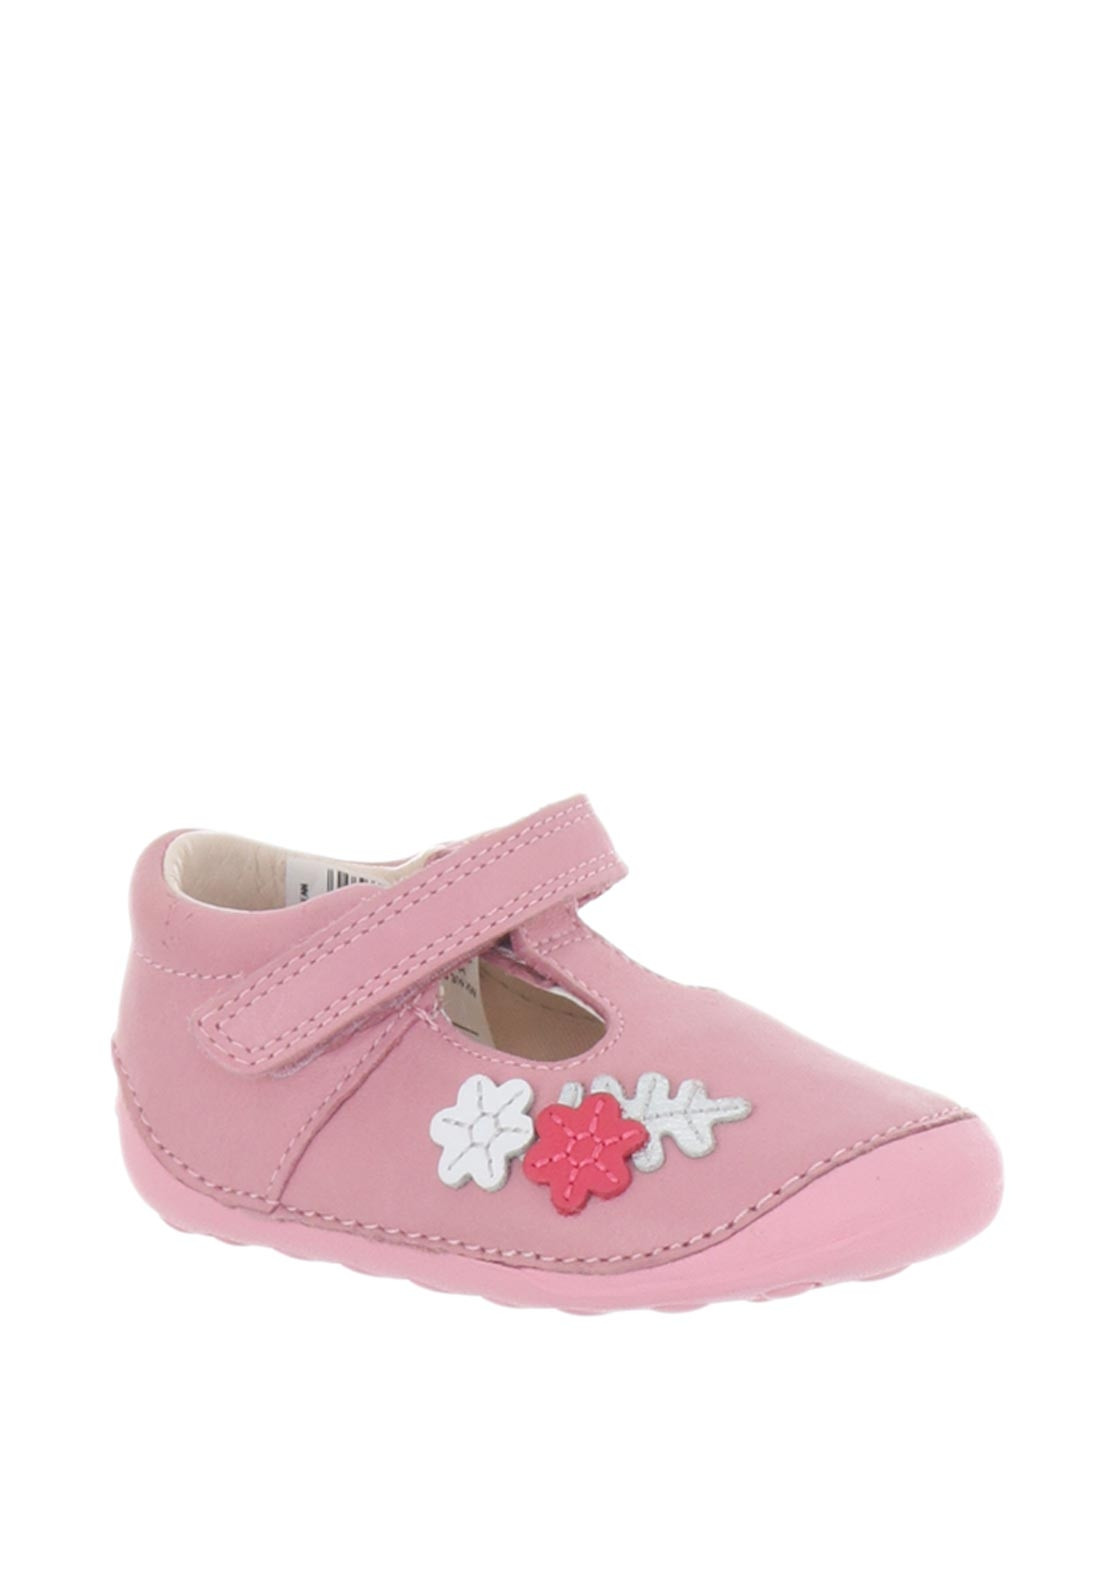 50% off attractive designs quality Clarks Baby Girls Pre-Walking Tiny Blossom Leather Pre-Walking Shoes, Pink